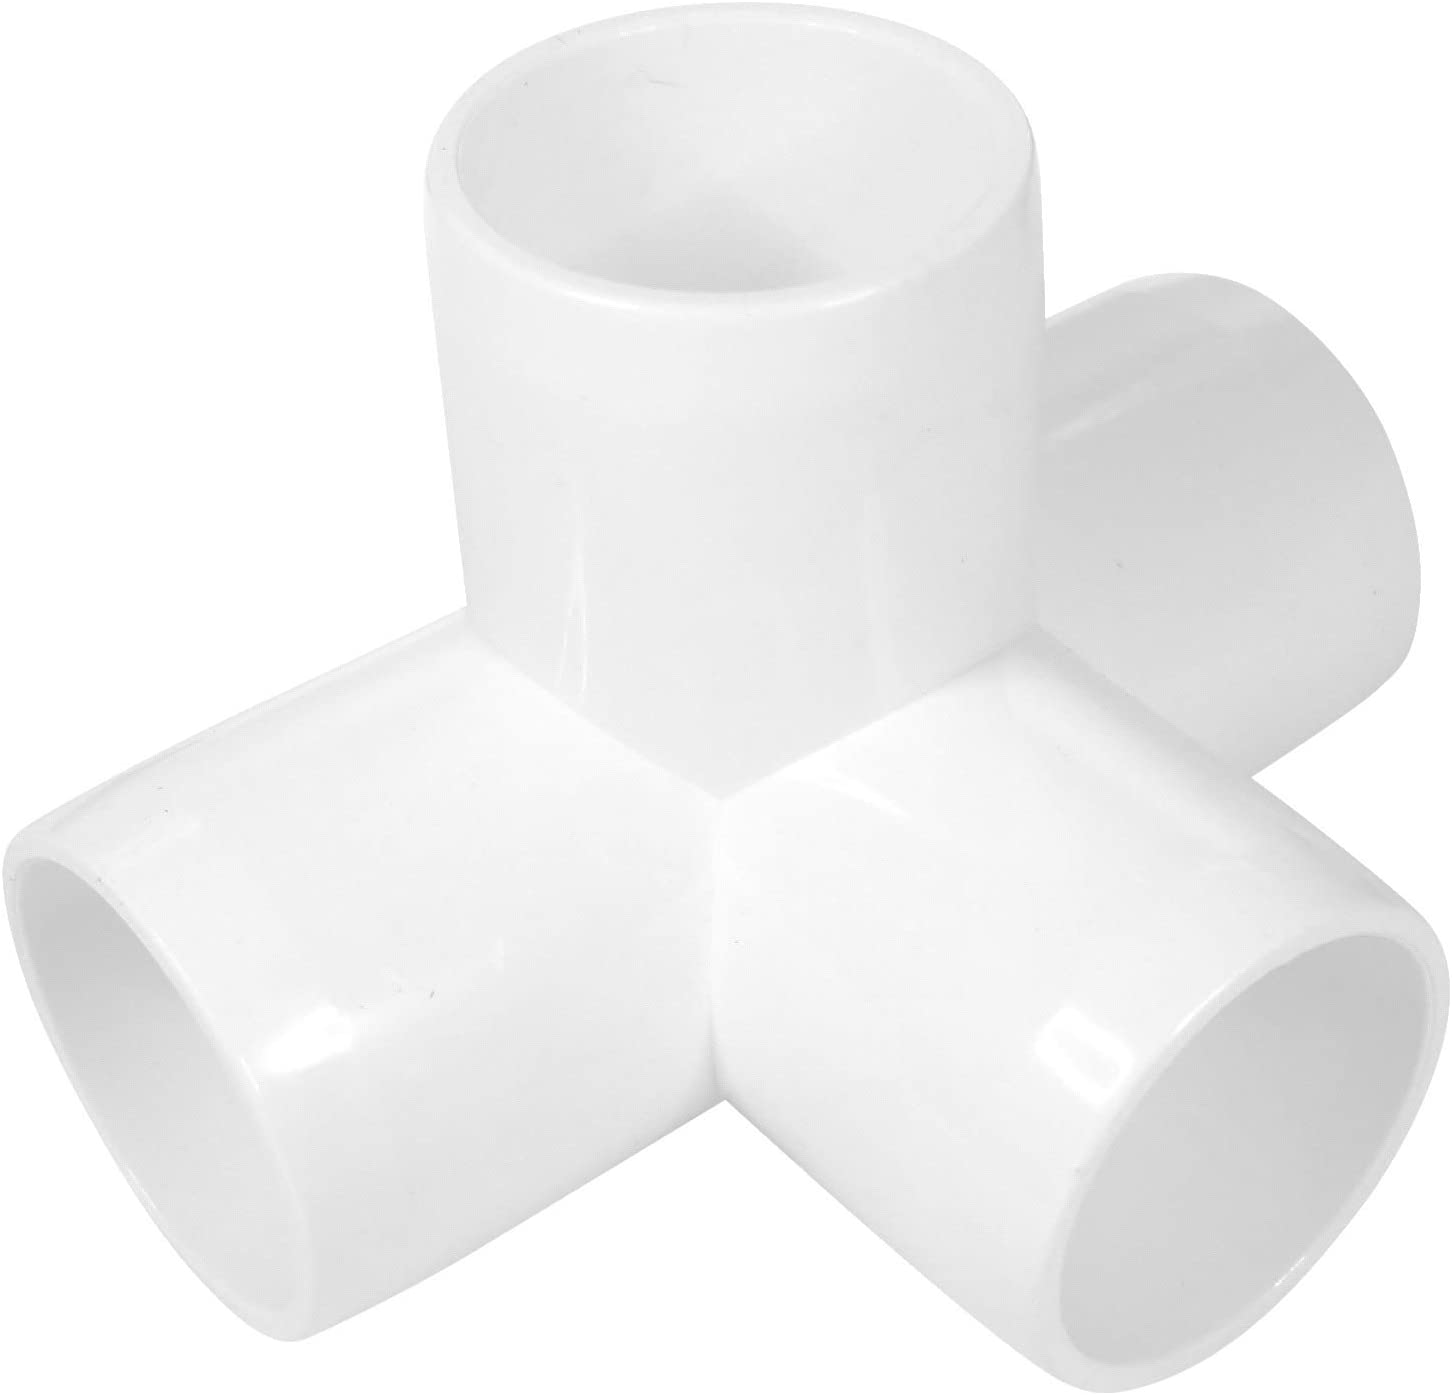 (10 PACK) 4-Way 1 1/4 inch SCH40 PVC Fitting, Tee Pipe Fittings PVC Connectors - Build Heavy Duty Furniture Grade for 1 1/4 inch inch Size Pipe, White (10)